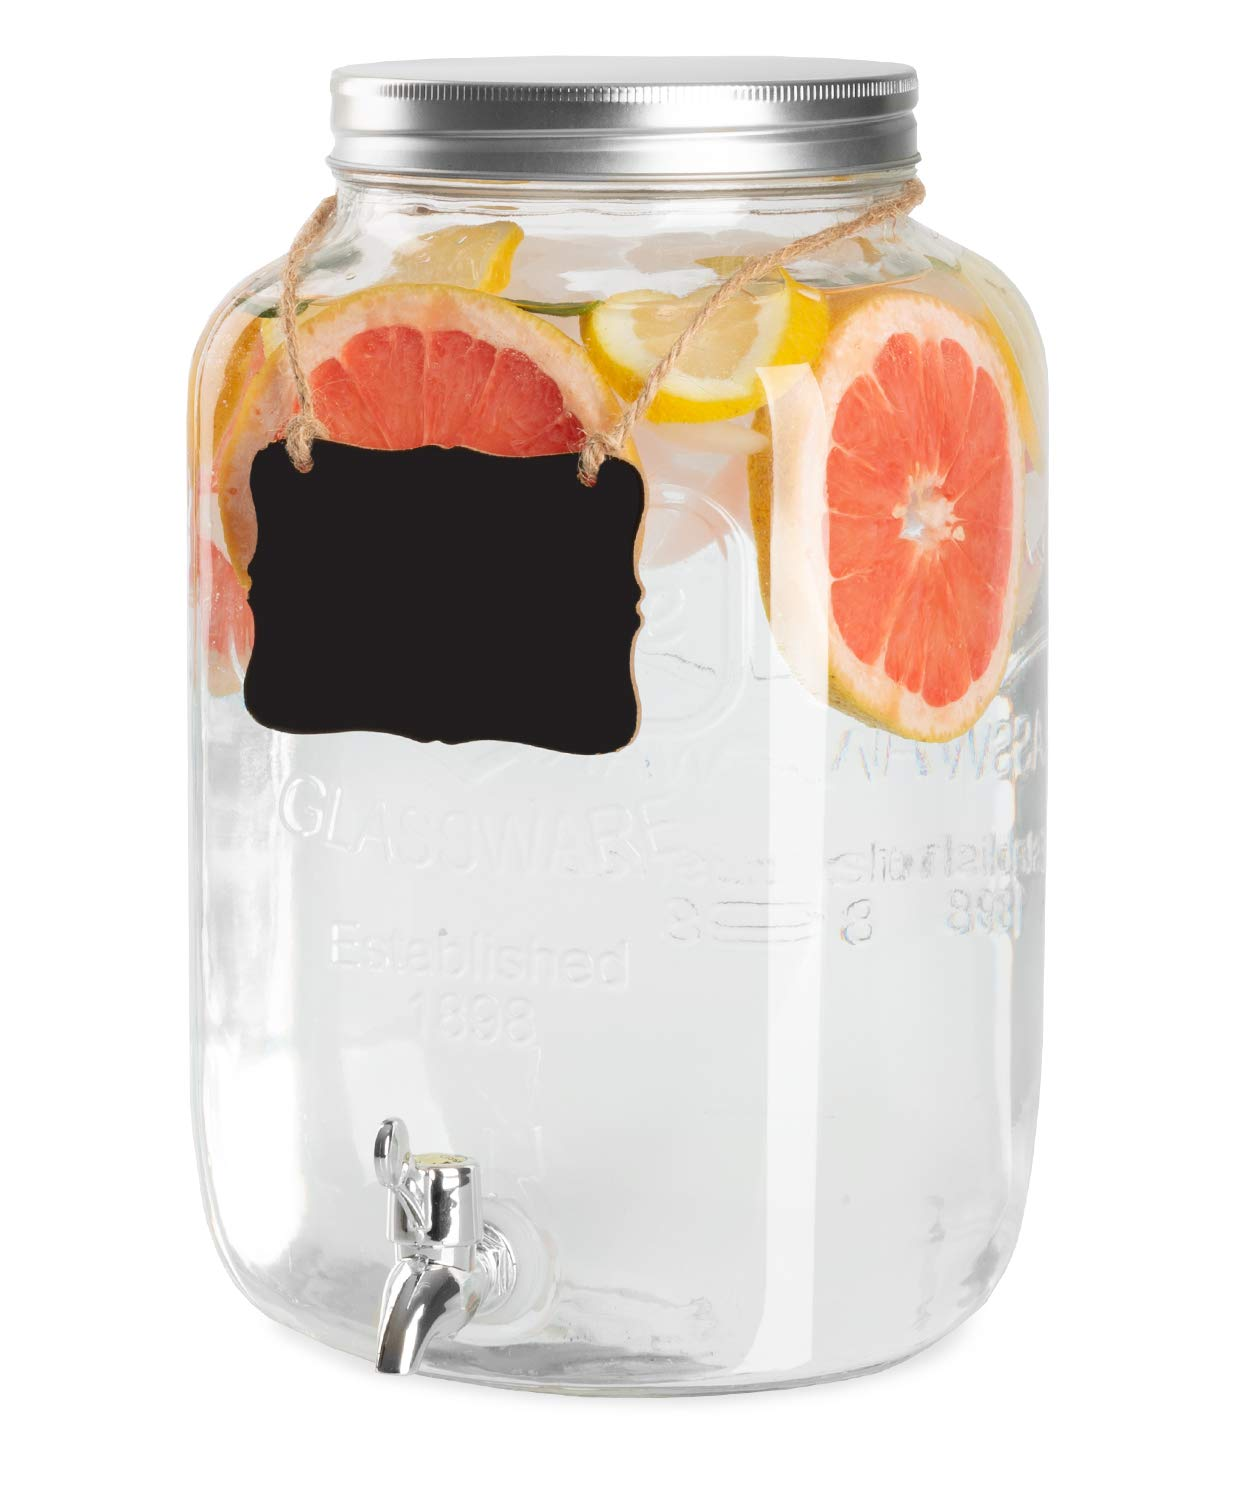 Outdoor Glass Beverage Dispenser with Hanging Chalkboard & Chalk - 2 Gallon Drink Dispenser for Lemonade, Tea, Cold Water & More